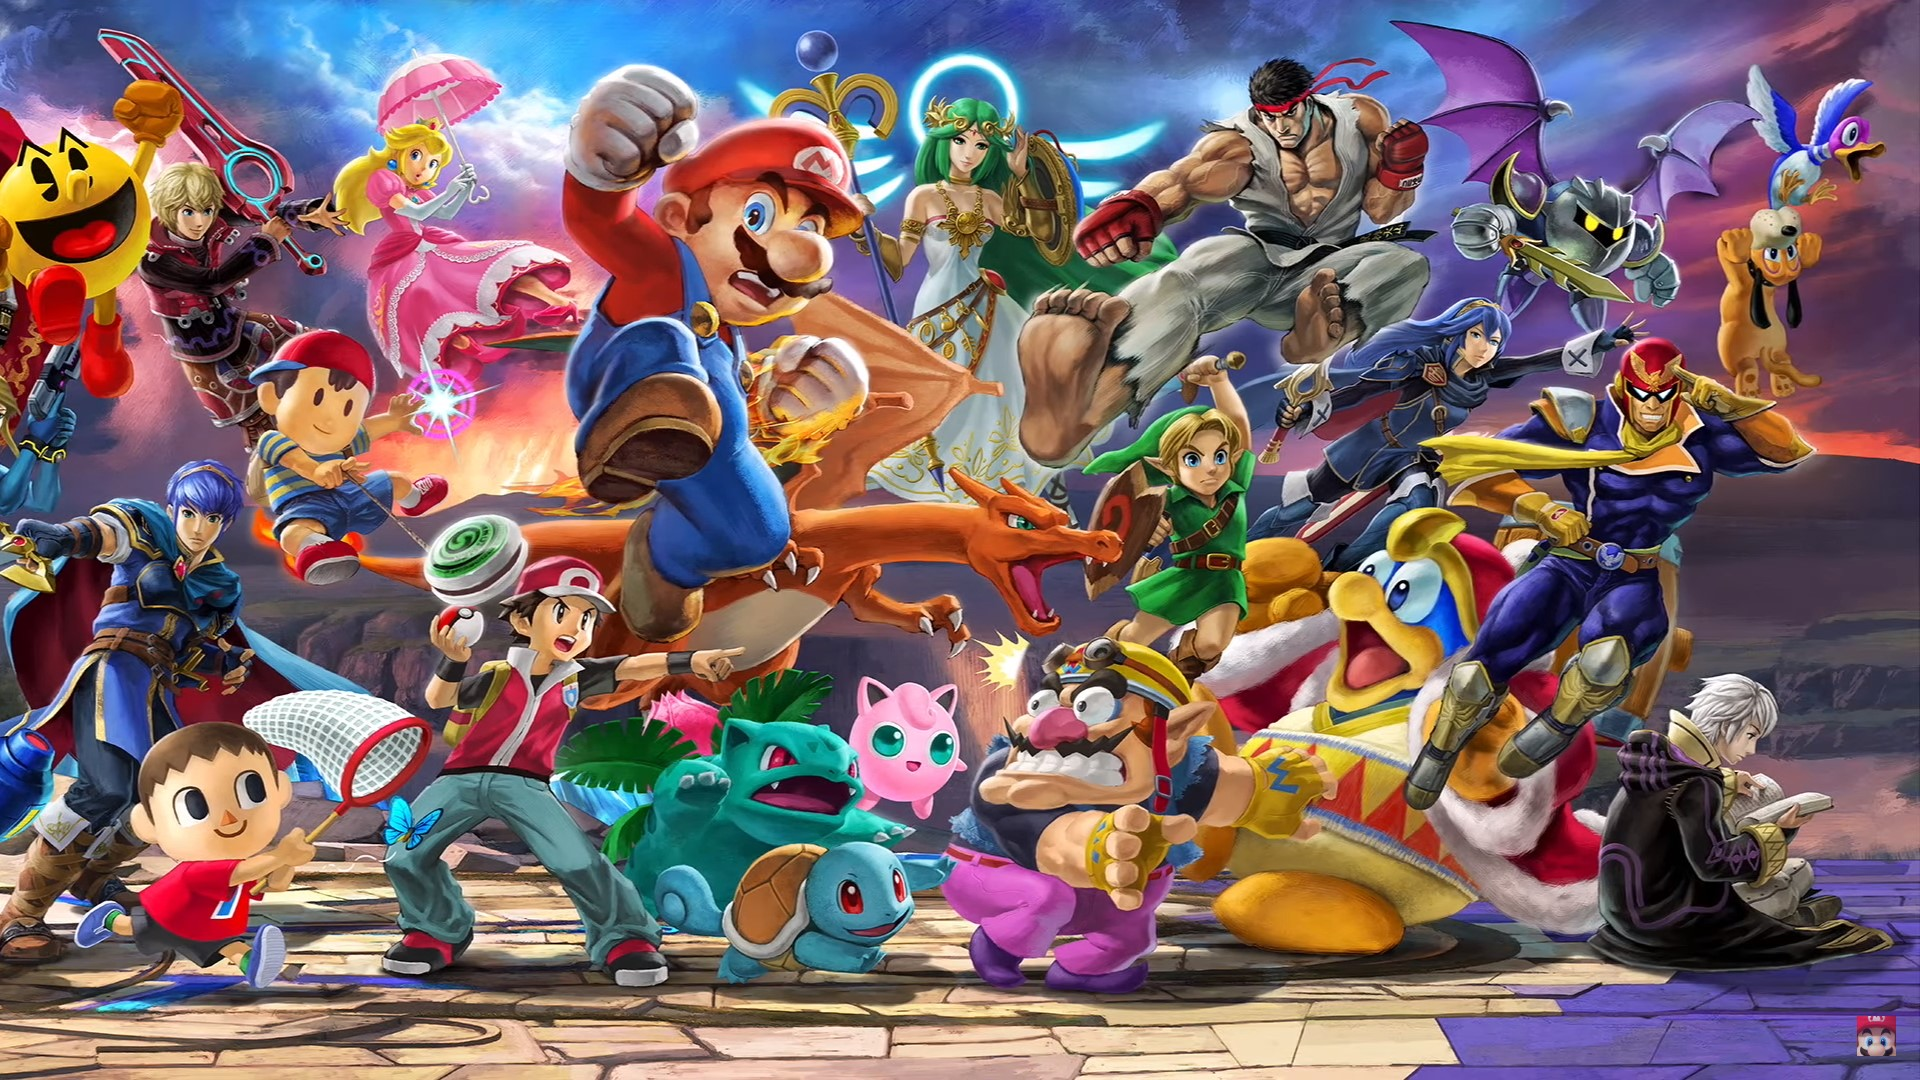 Super Smash Bros Ultimate Switch Release Date Characters Spirits Bigger Are Circuit For Series 220v Life 3ds To Is A Big Deal Fans And Nintendo With The Game Likely End Up One Of Top Selling Games On During Its Lifetime